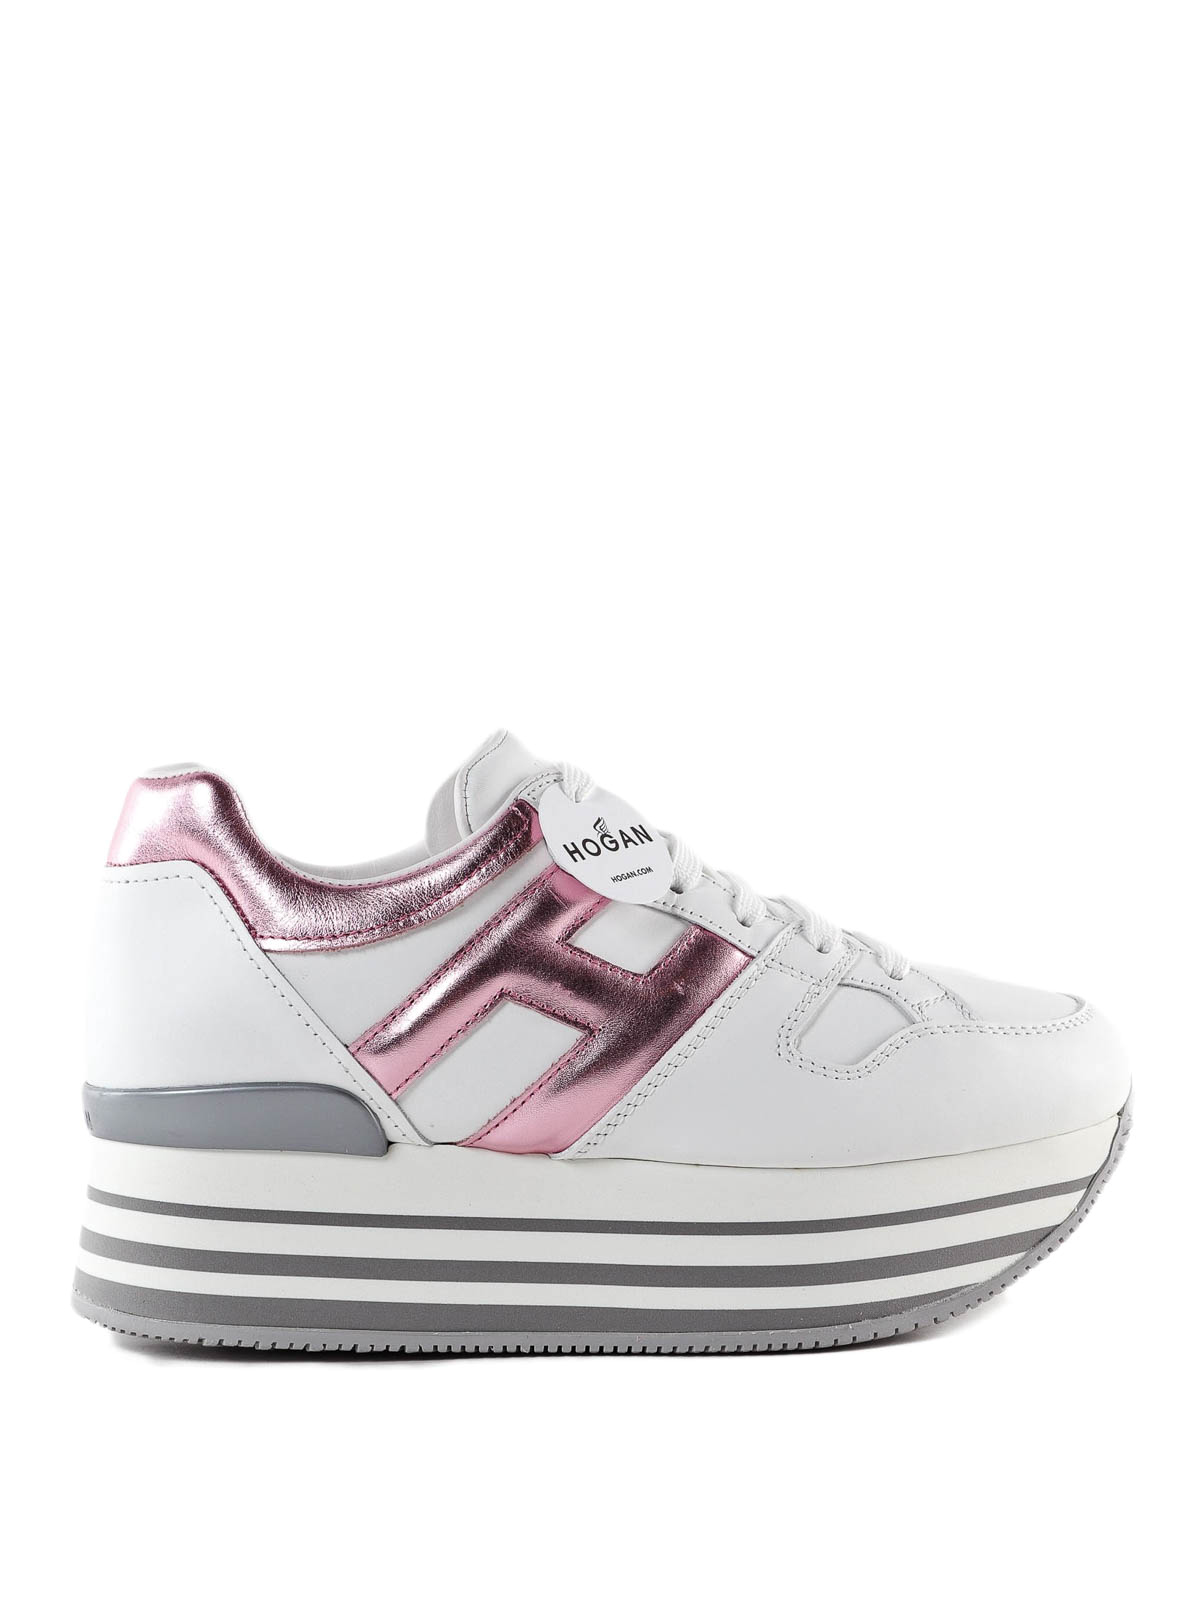 Hogan - Maxi H222 white and pink leather sneakers - trainers ...